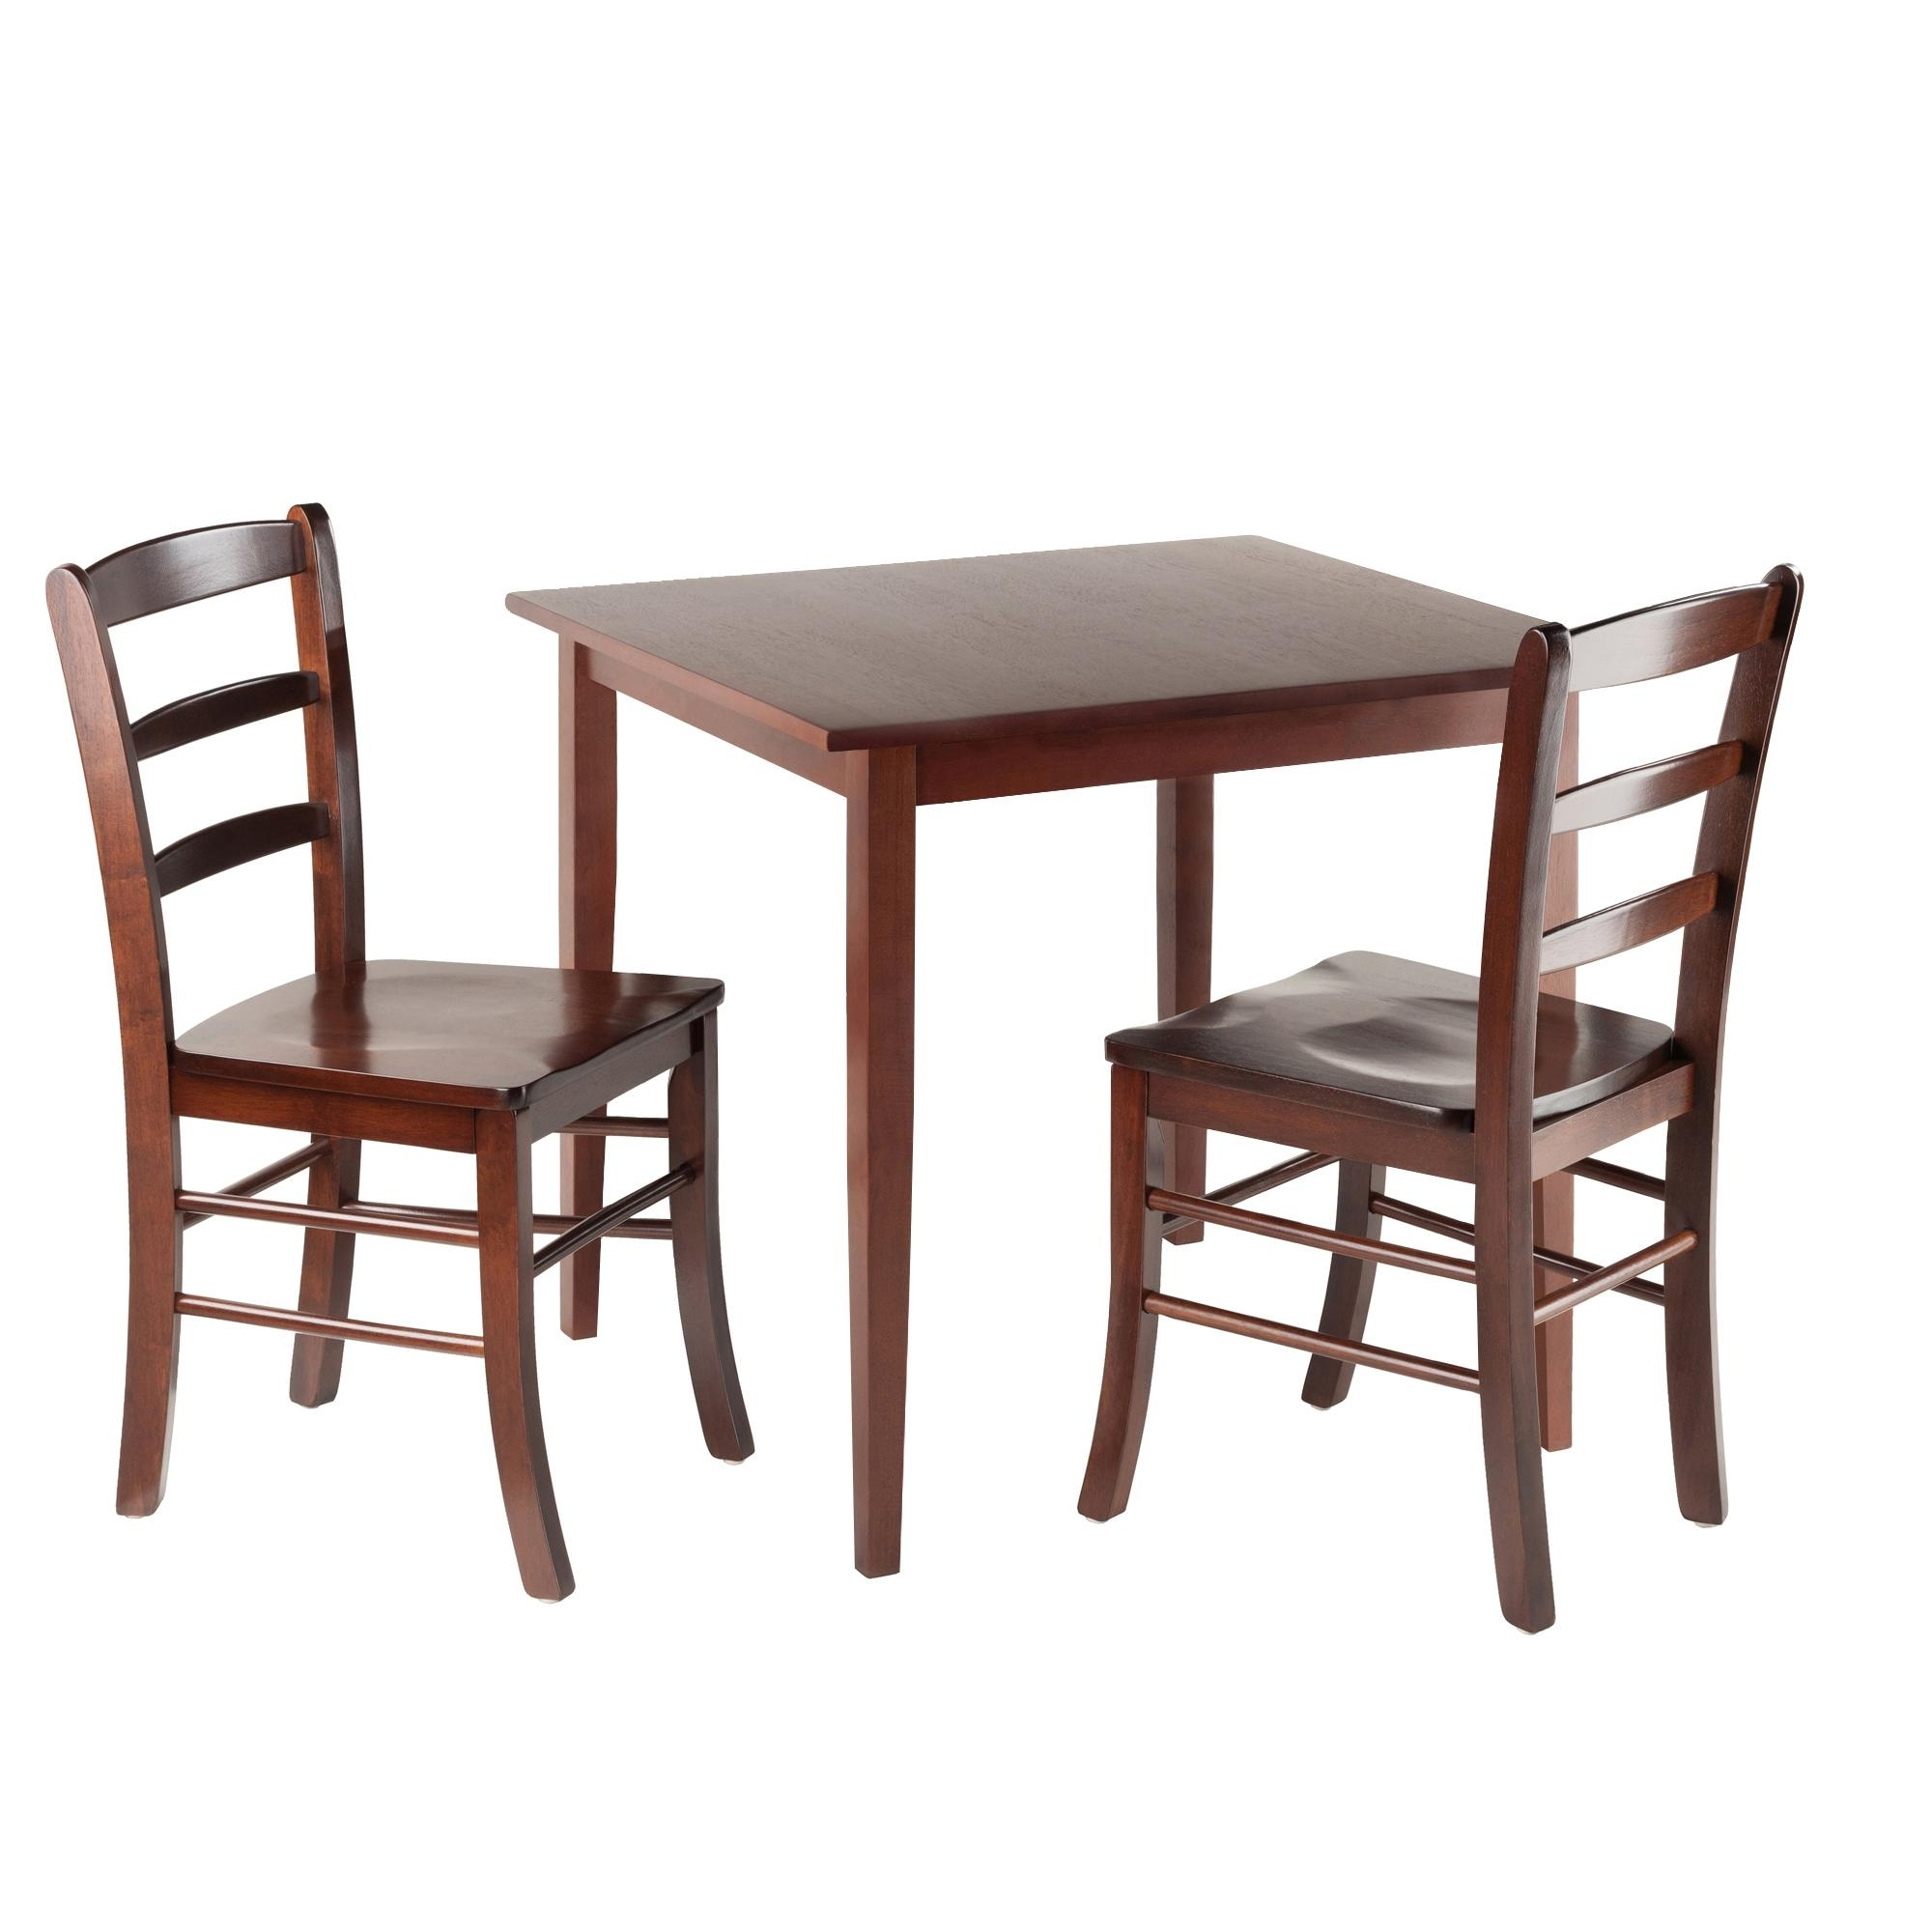 Amazon – Winsome Groveland Square Dining Table With 2 Chairs, 3 Regarding Most Recently Released Square Dining Tables (View 3 of 25)